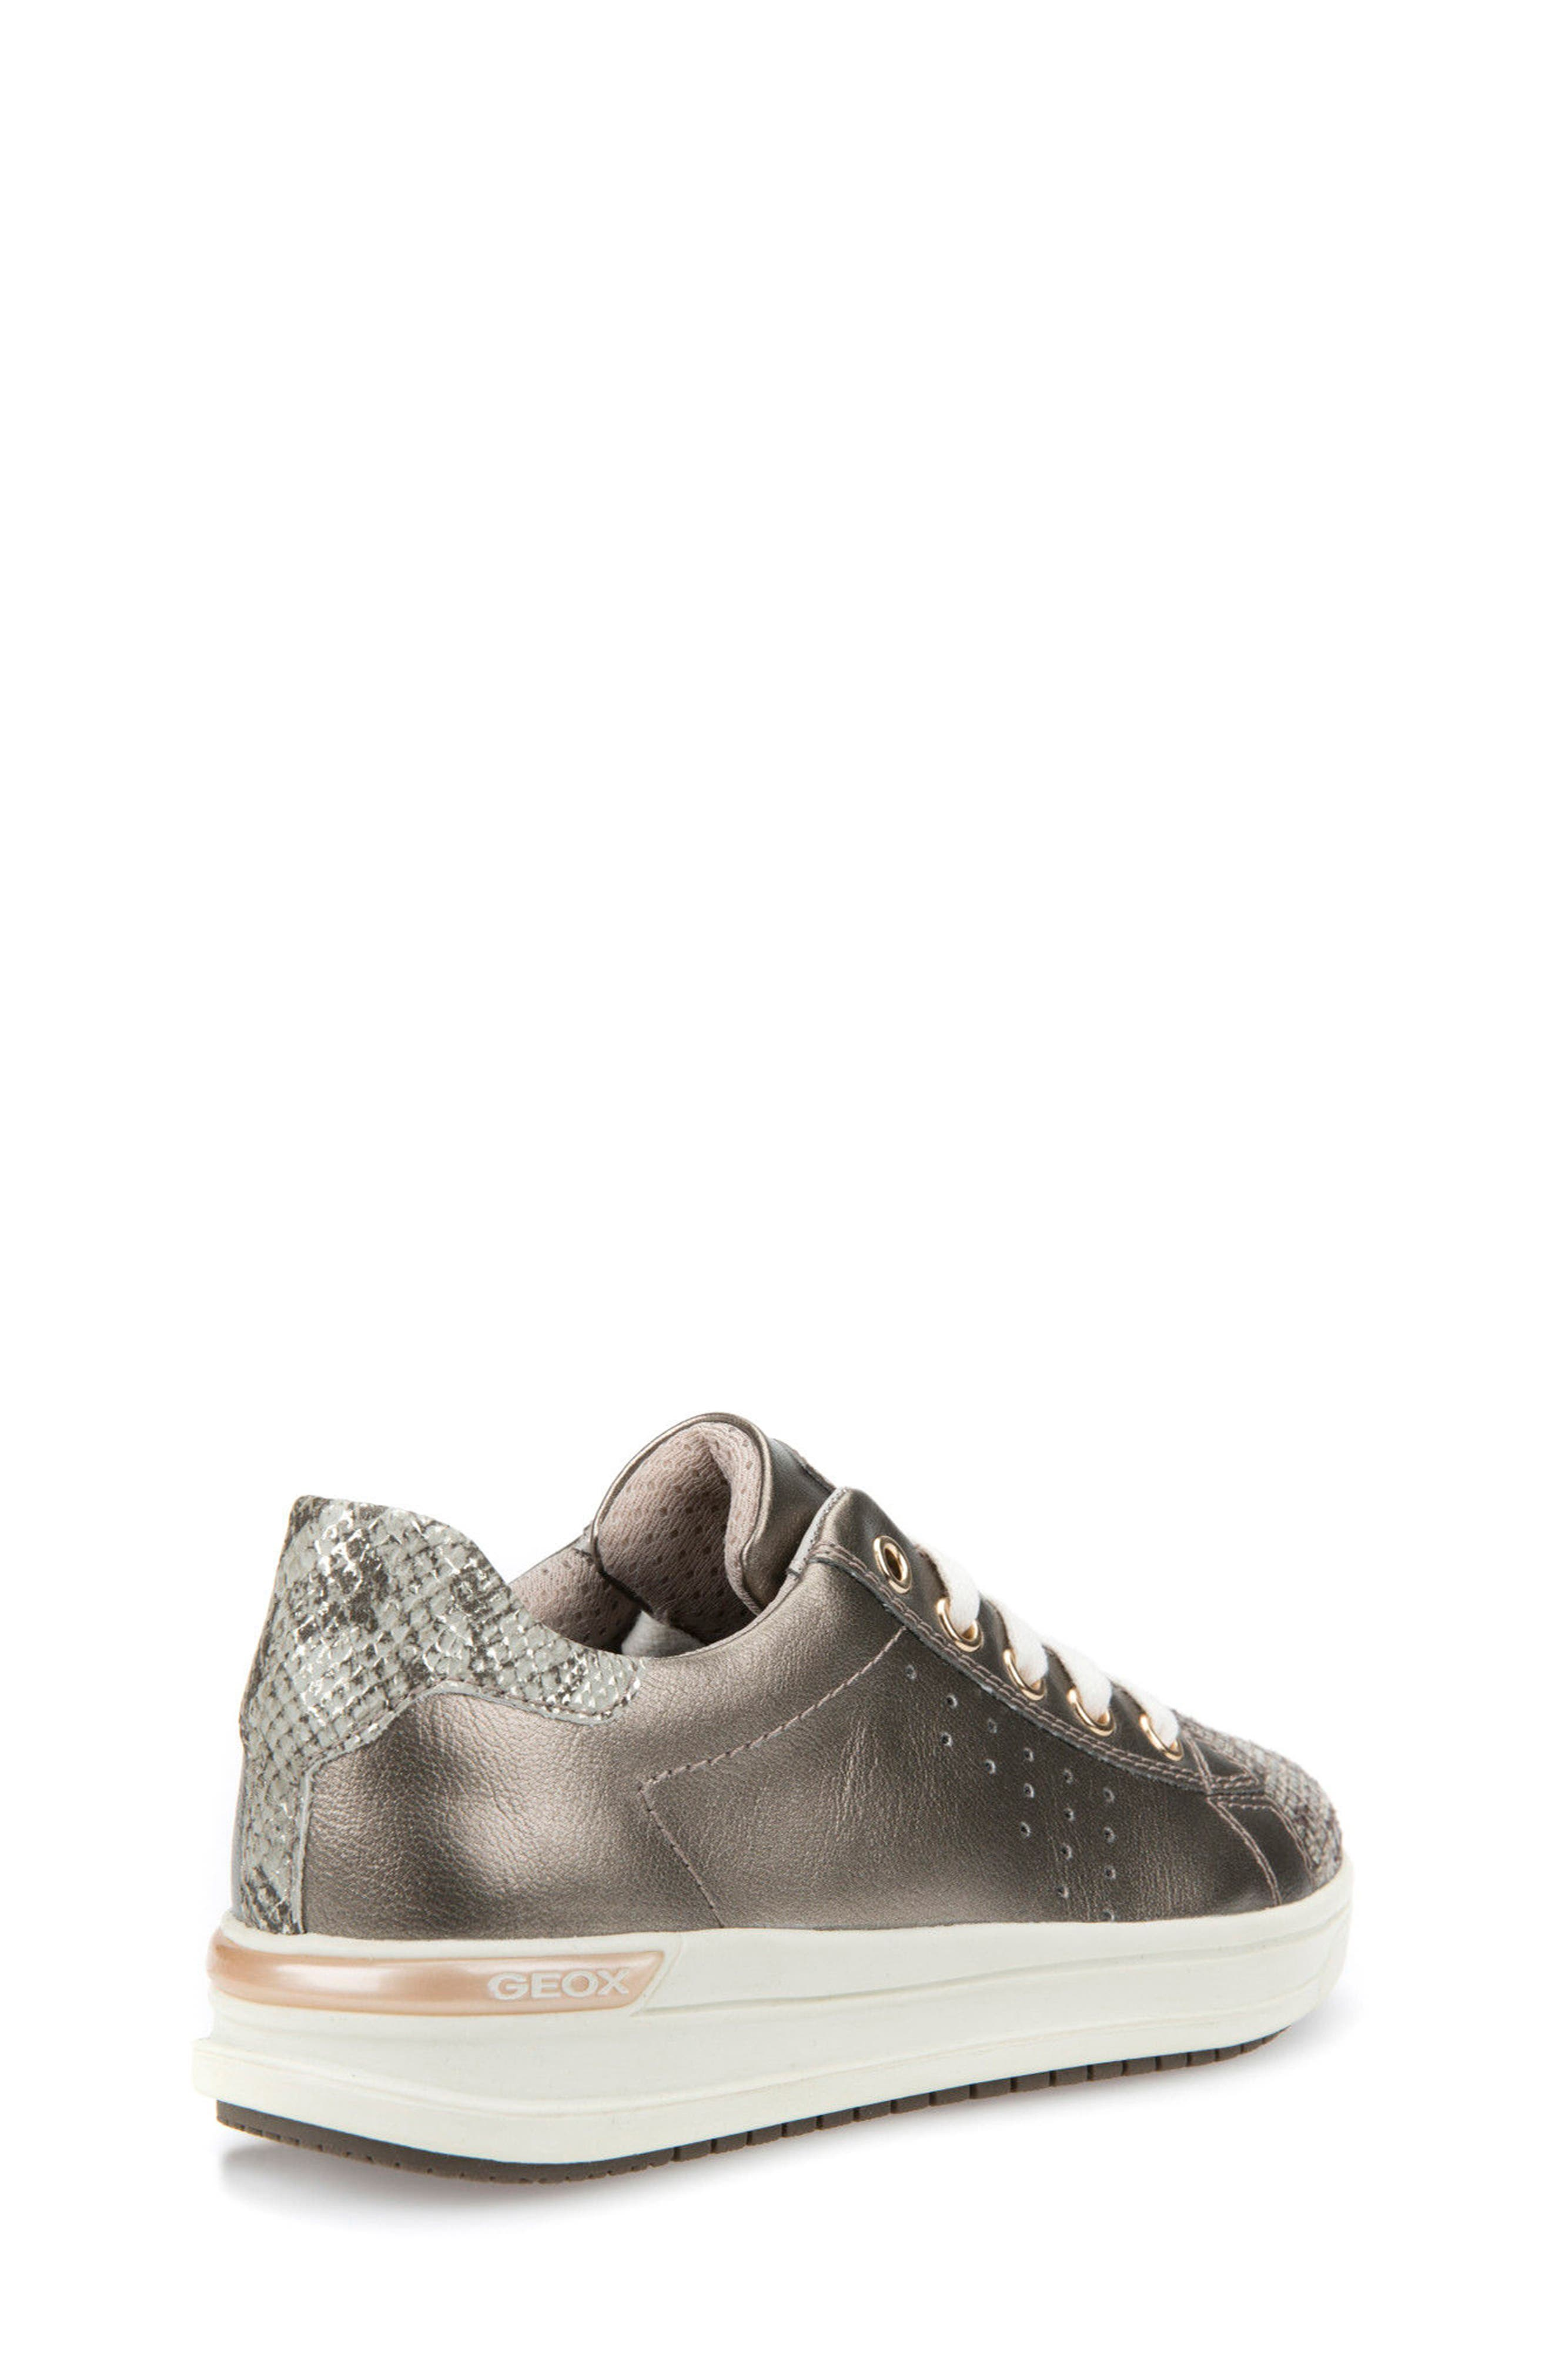 Cave Up Girl Low Top Sneaker,                             Alternate thumbnail 2, color,                             710